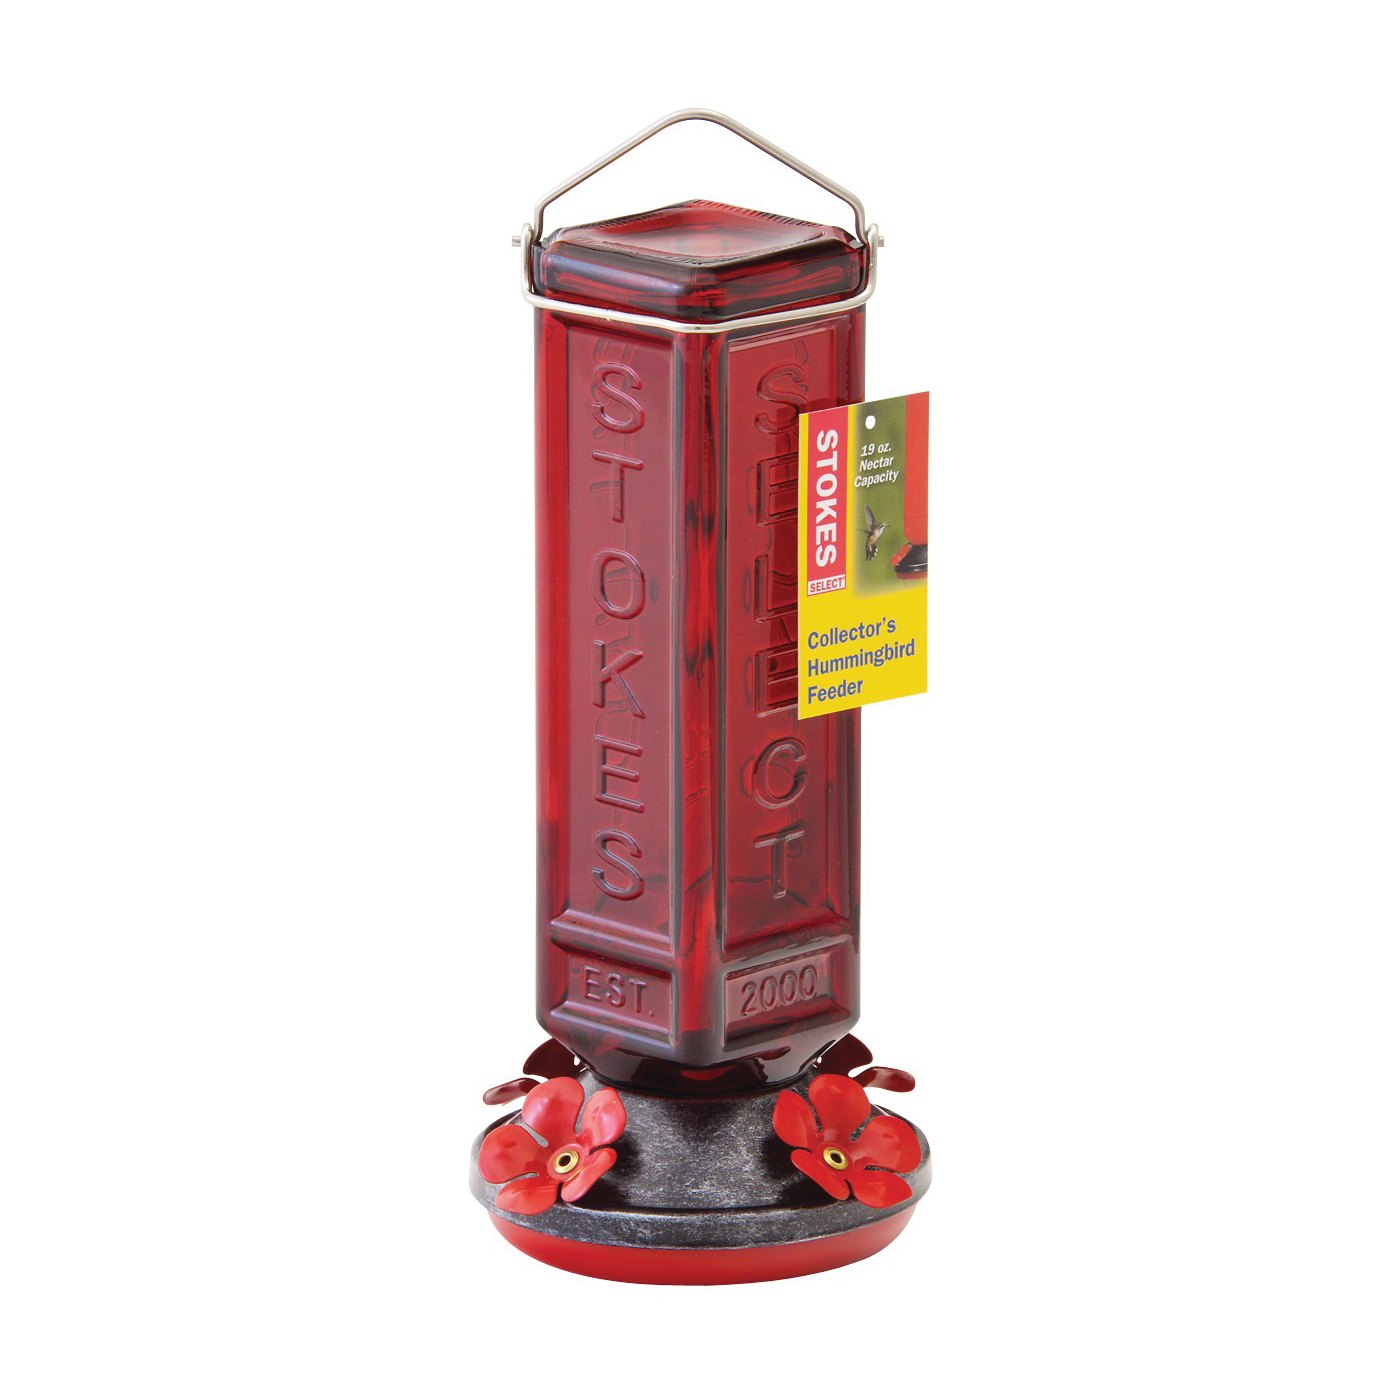 Picture of Stokes Select 38261 Hummingbird Feeder, 19 oz, 4-Port/Perch, Glass, Red, 10.6 in H